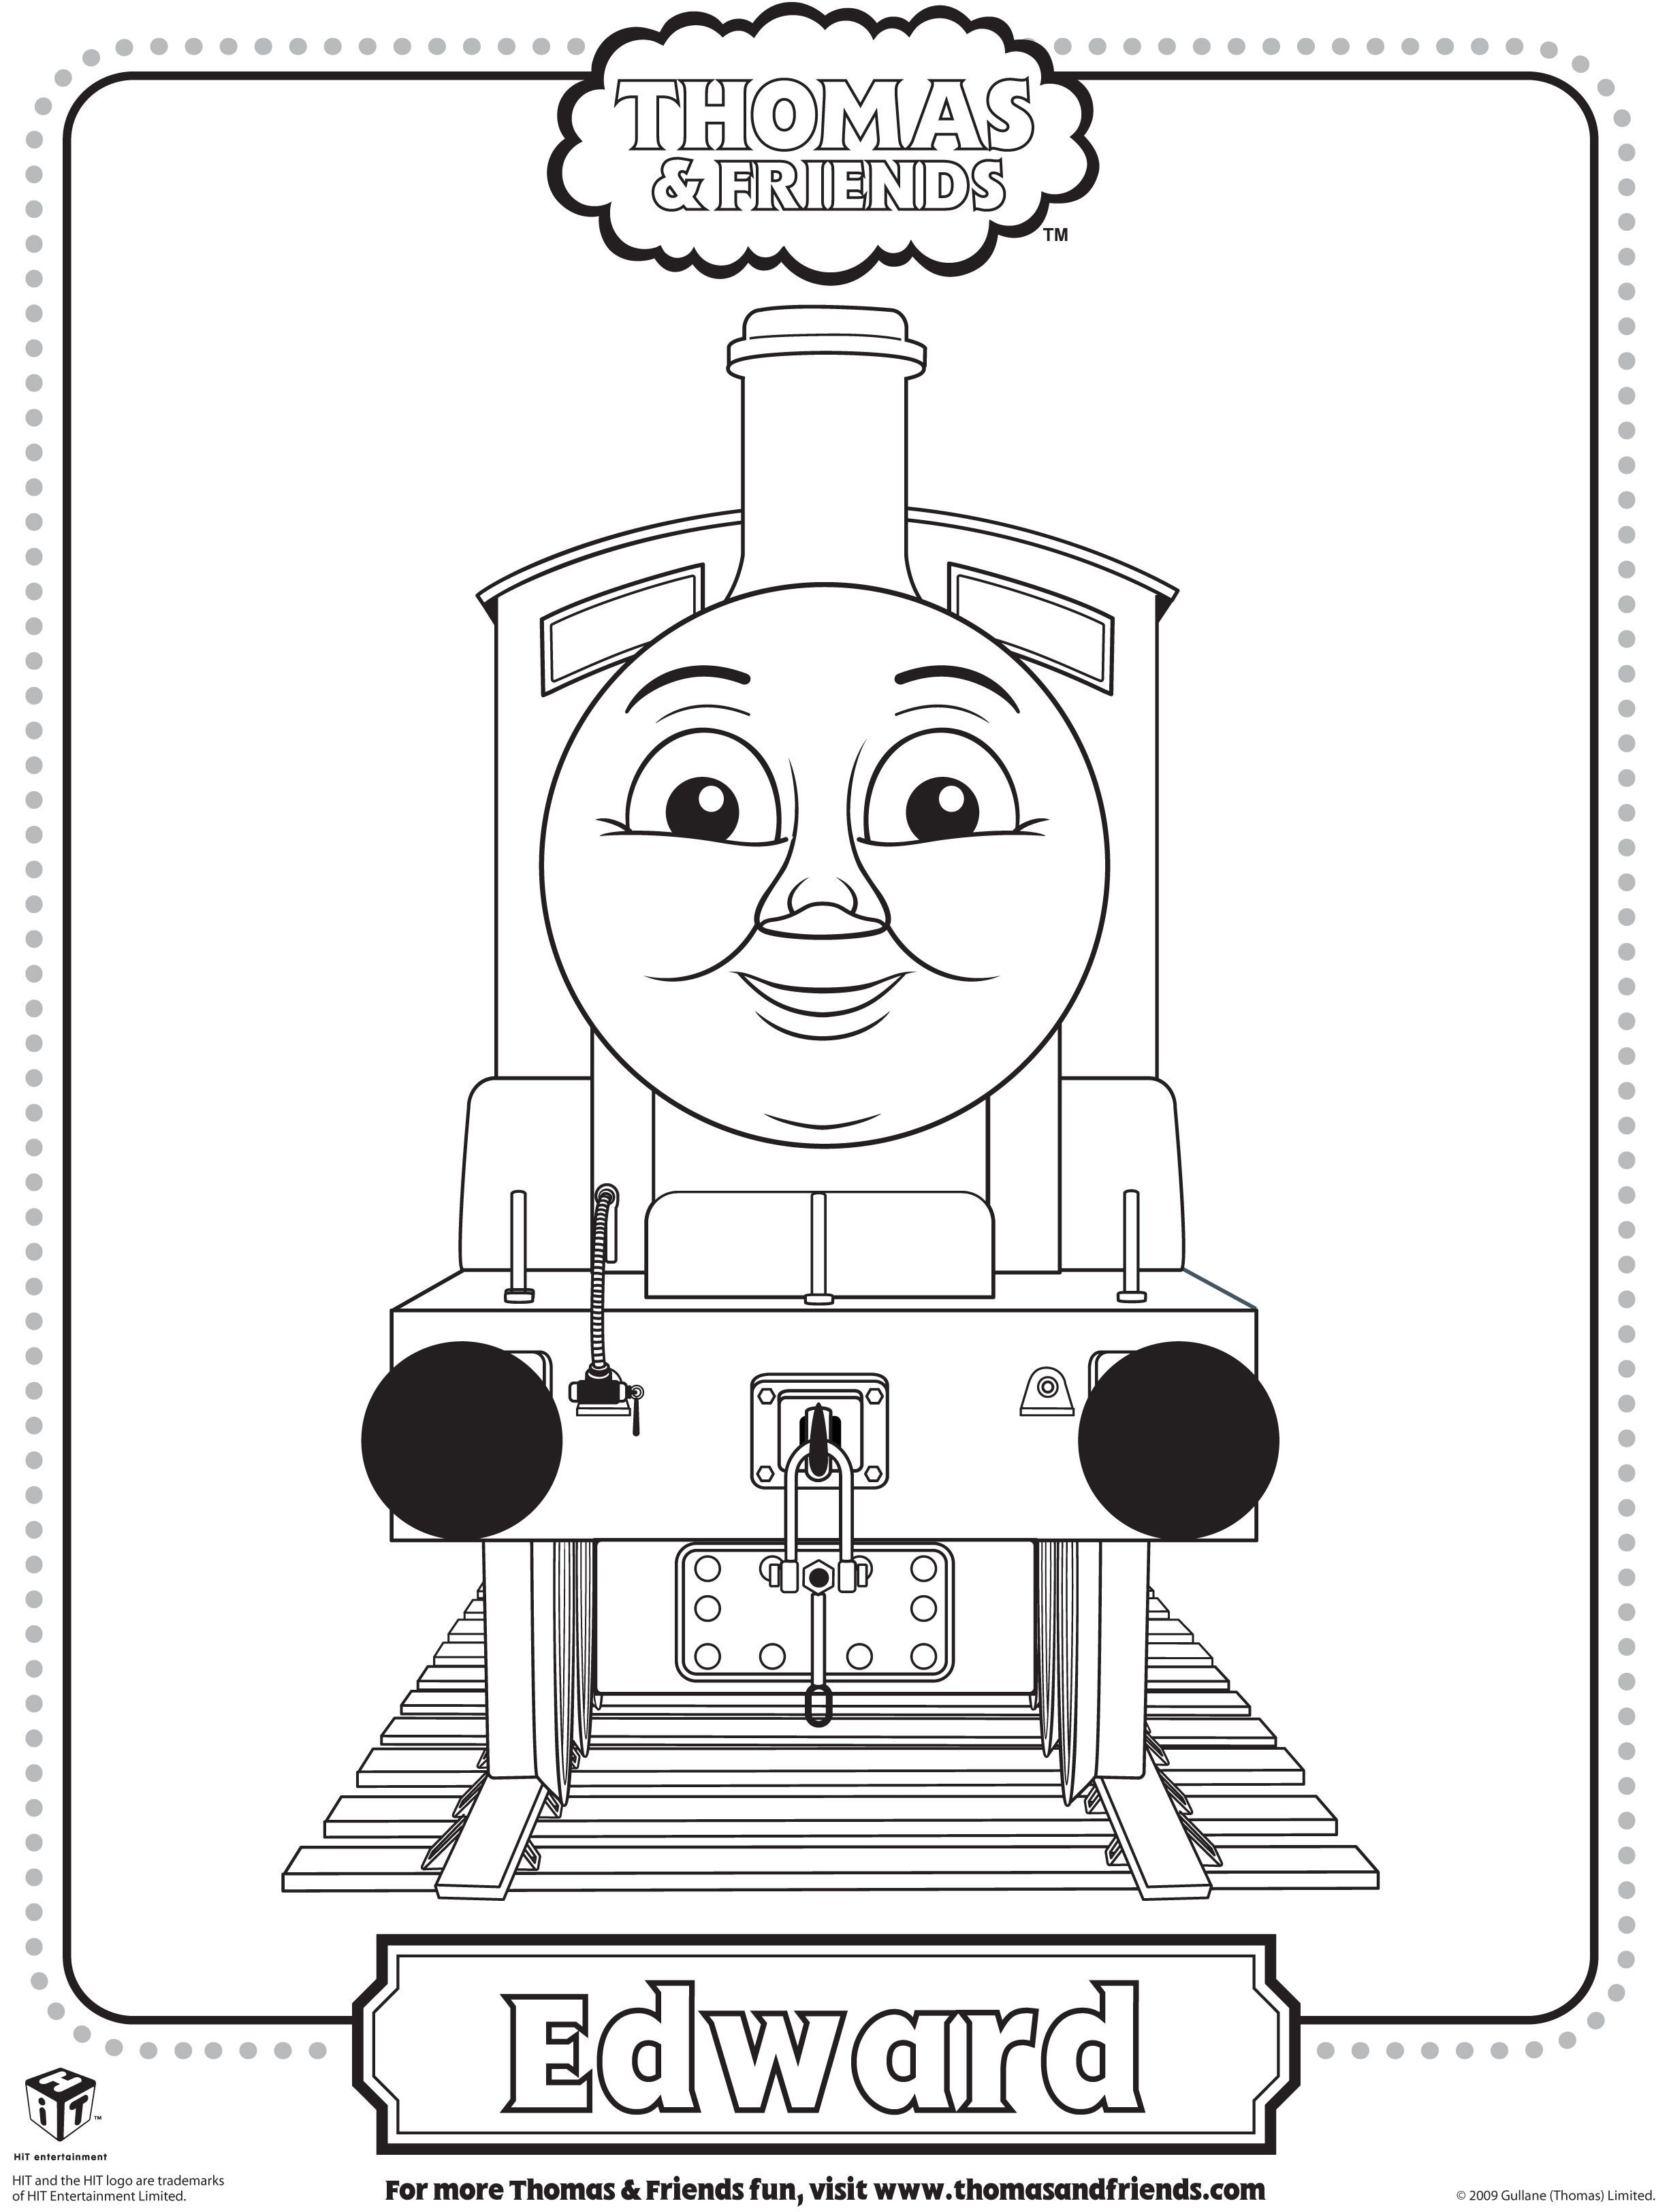 thomas and friends coloring pages james | thomas the train birthday ...